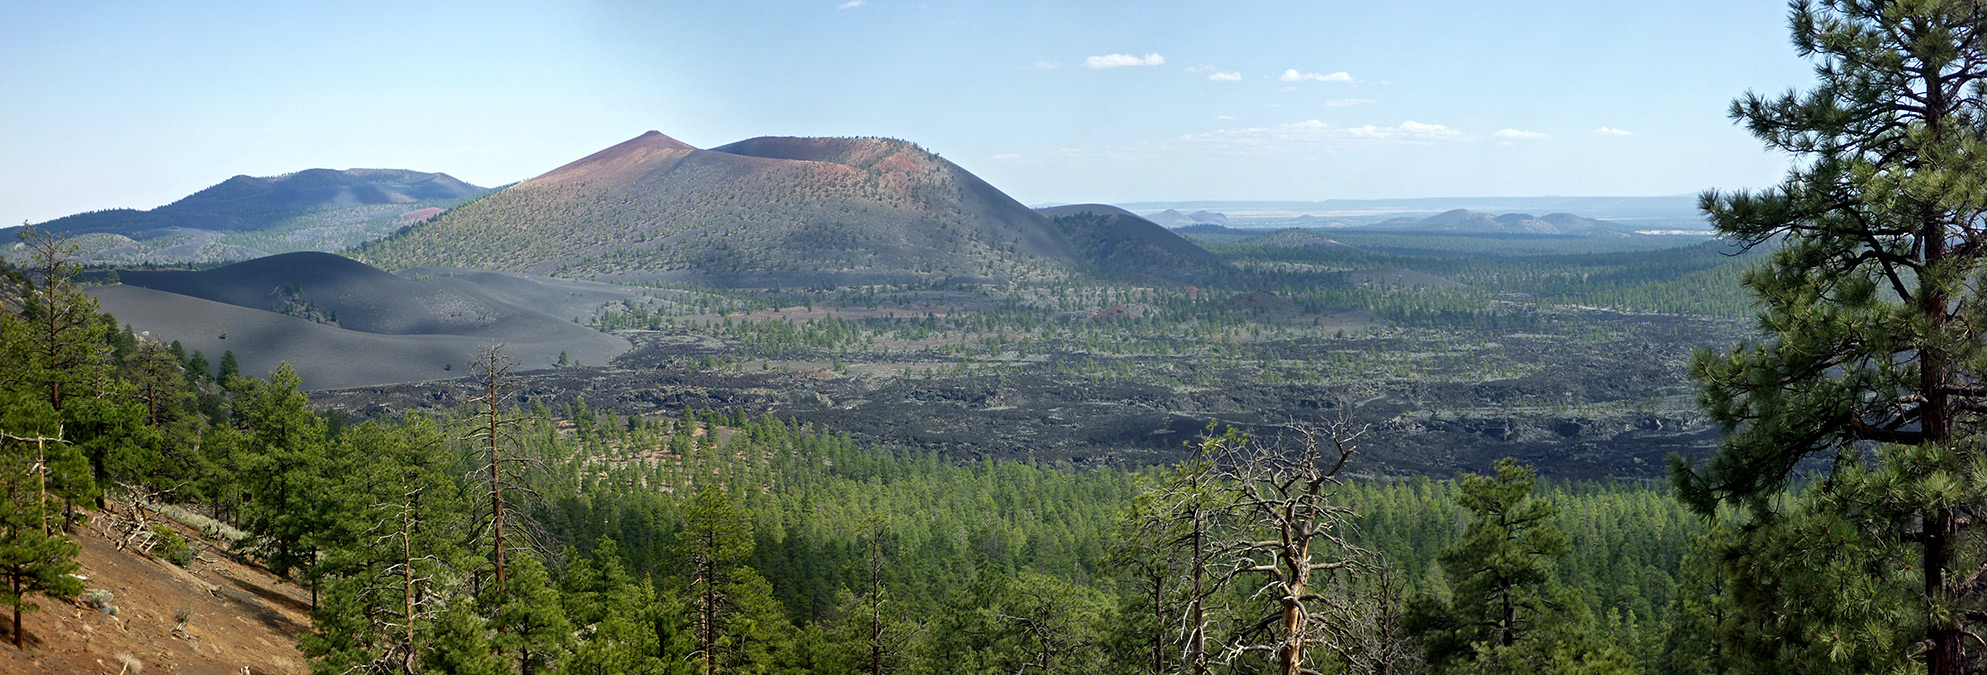 Panorama of Sunset Crater and the Bonito Lava Flow